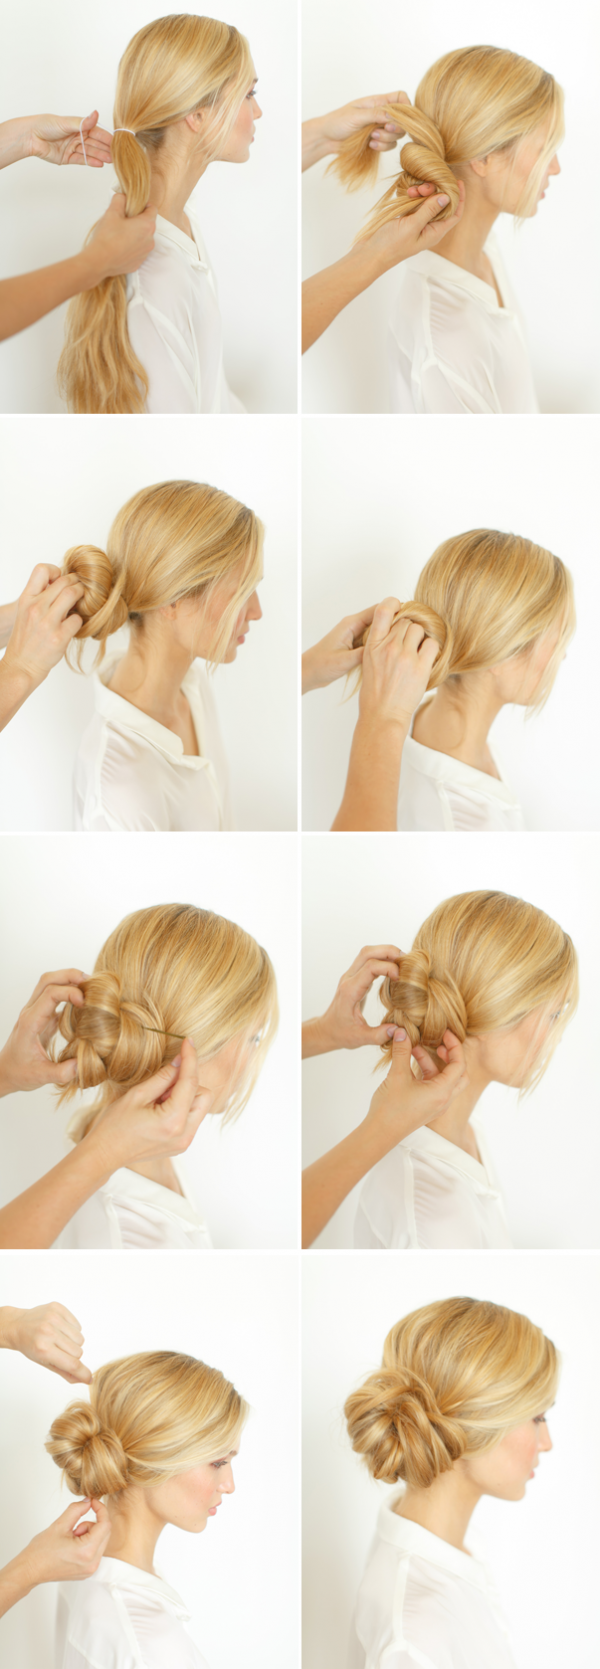 Stunning Side Hairstyle Tutorials That Will Make You Look Gorgeous